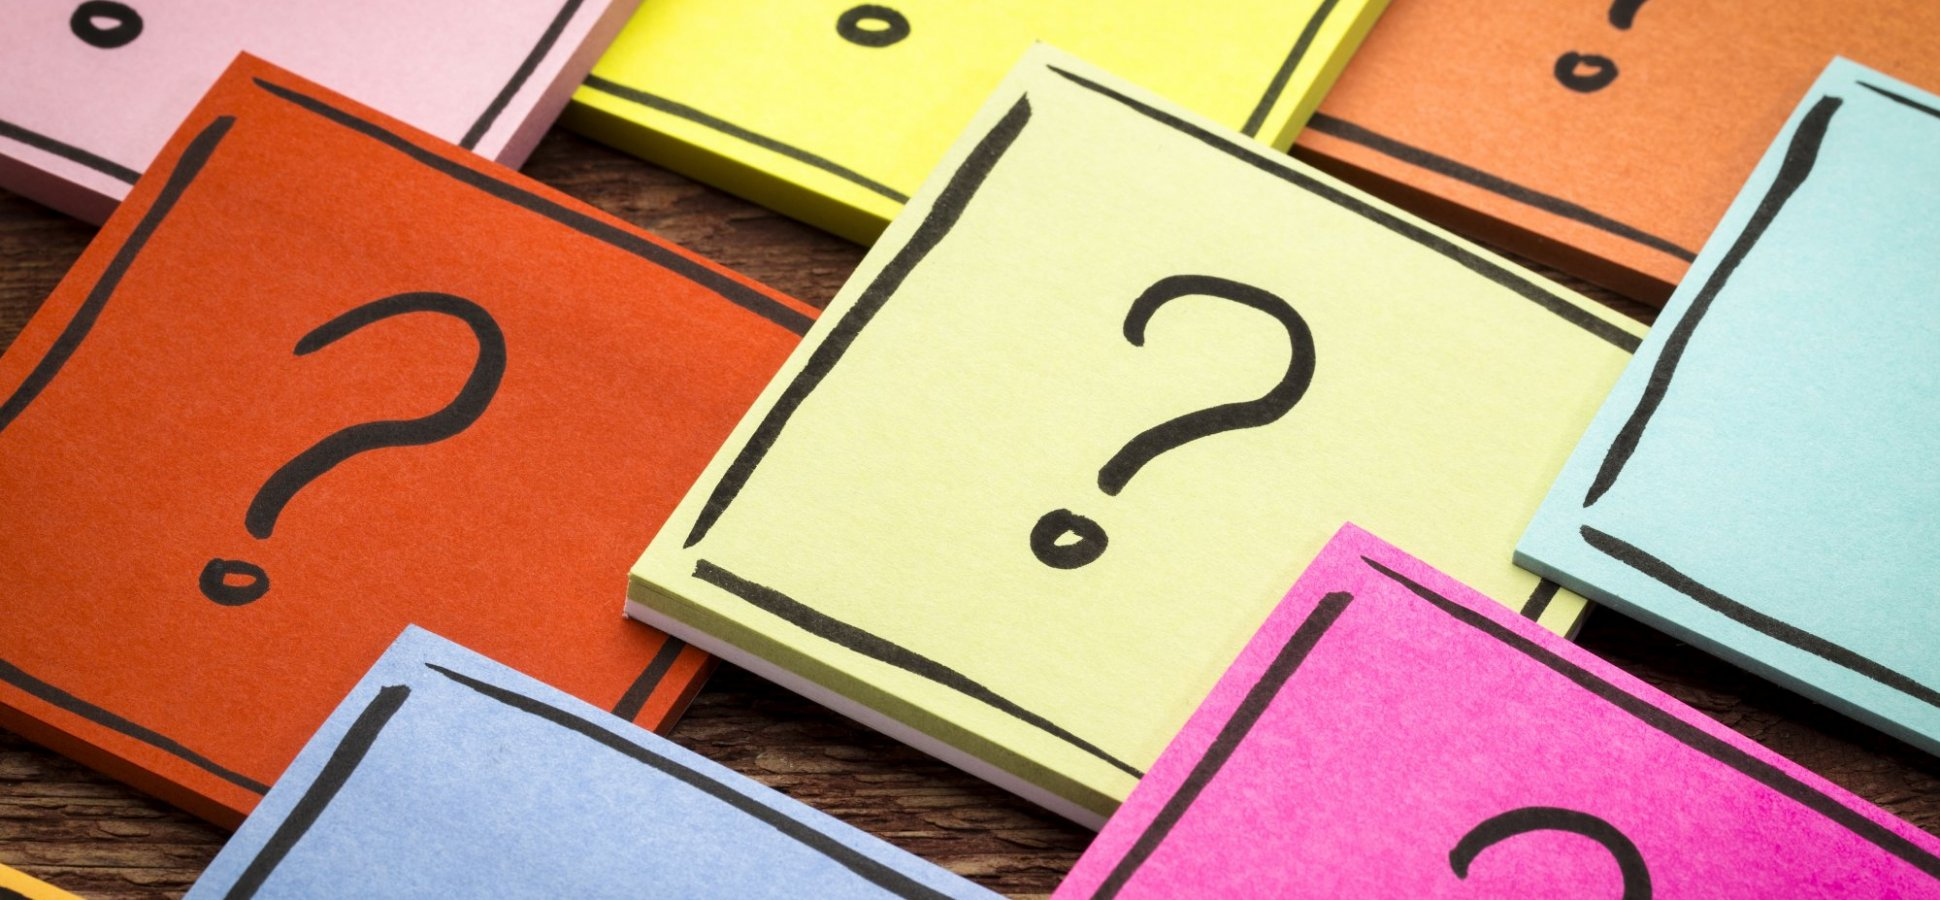 Starting Your Questions with 'Why' Could Be Killing Your Work Relationships. Here's What to Use Instead